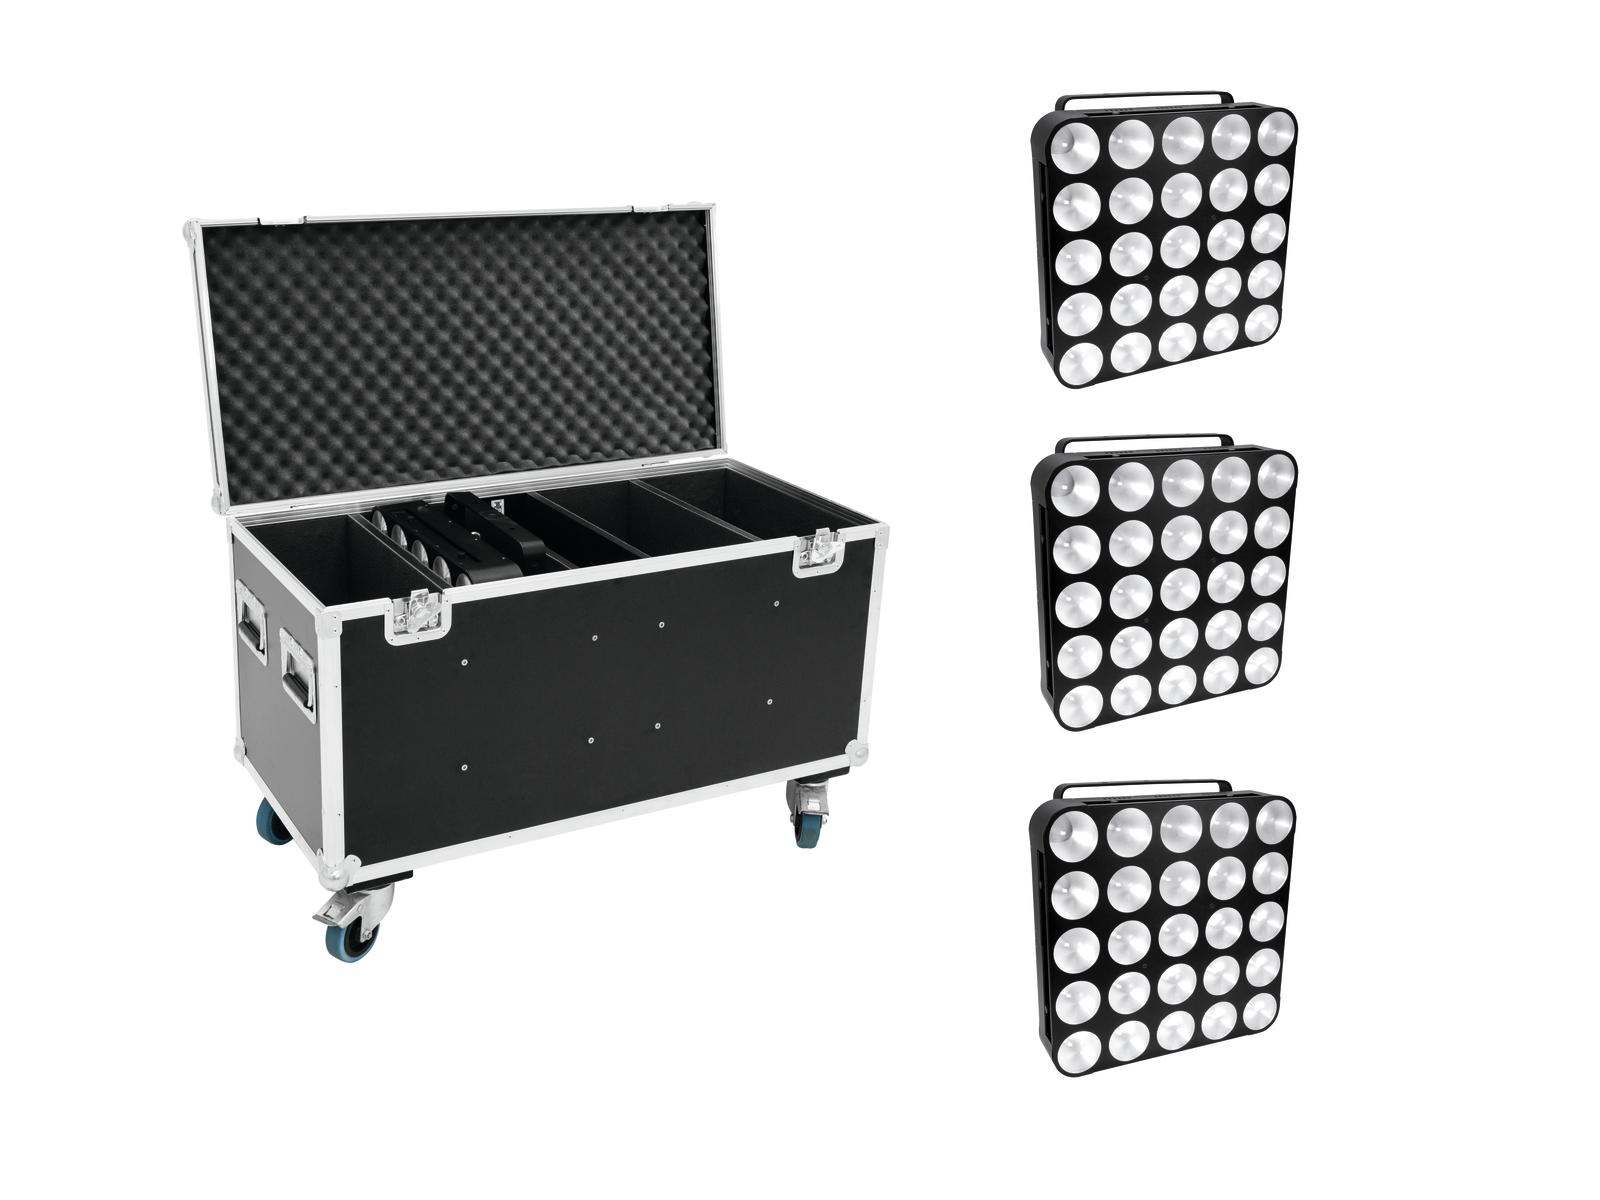 EUROLITE Set 4x LED PMC-25x10W